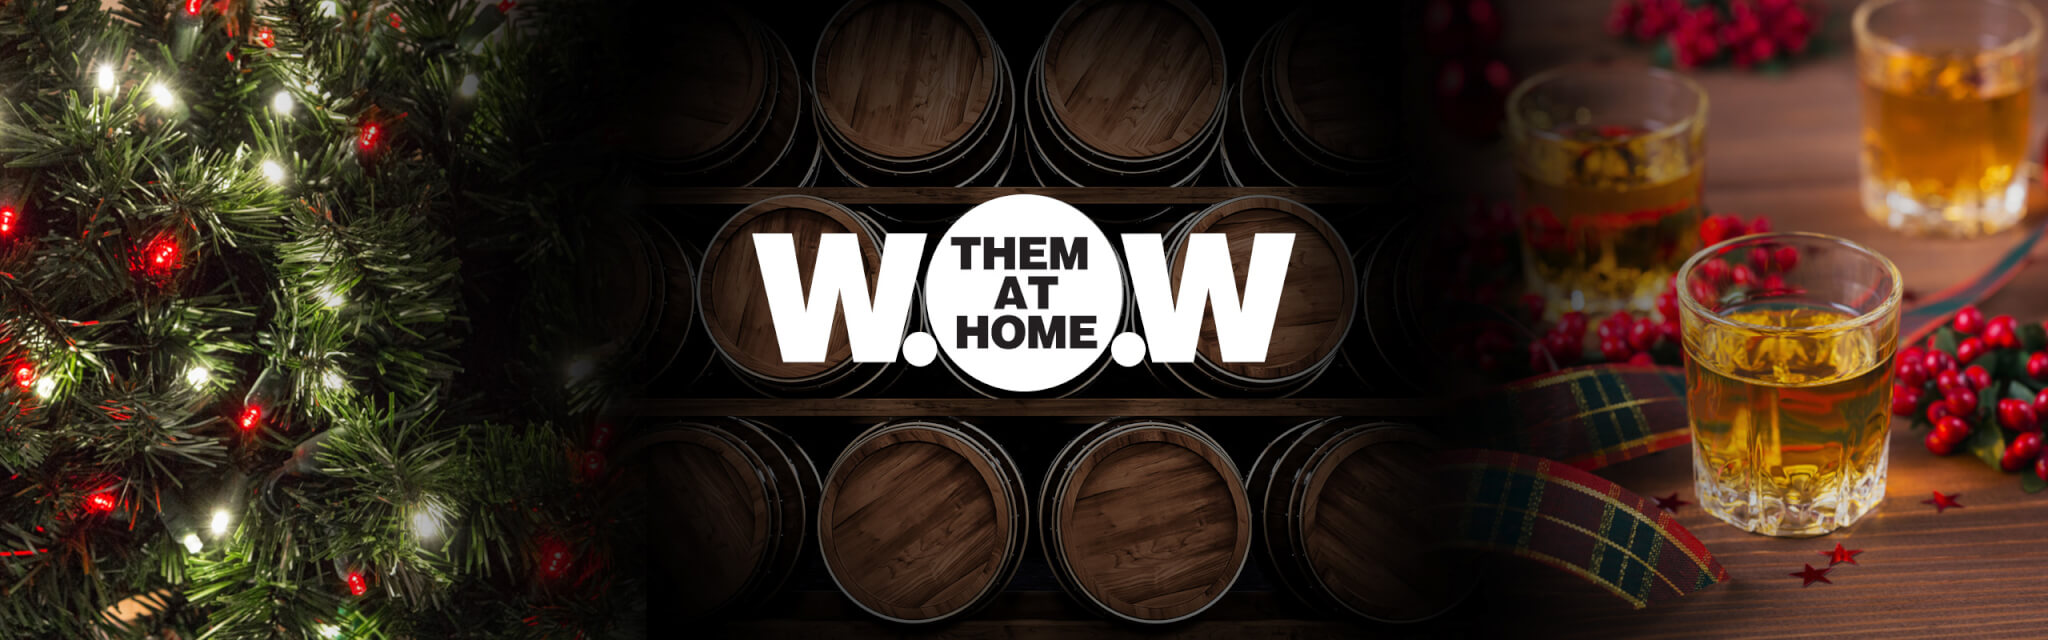 WOW THEM AT HOME - HOLIDAY EXPERIENCE